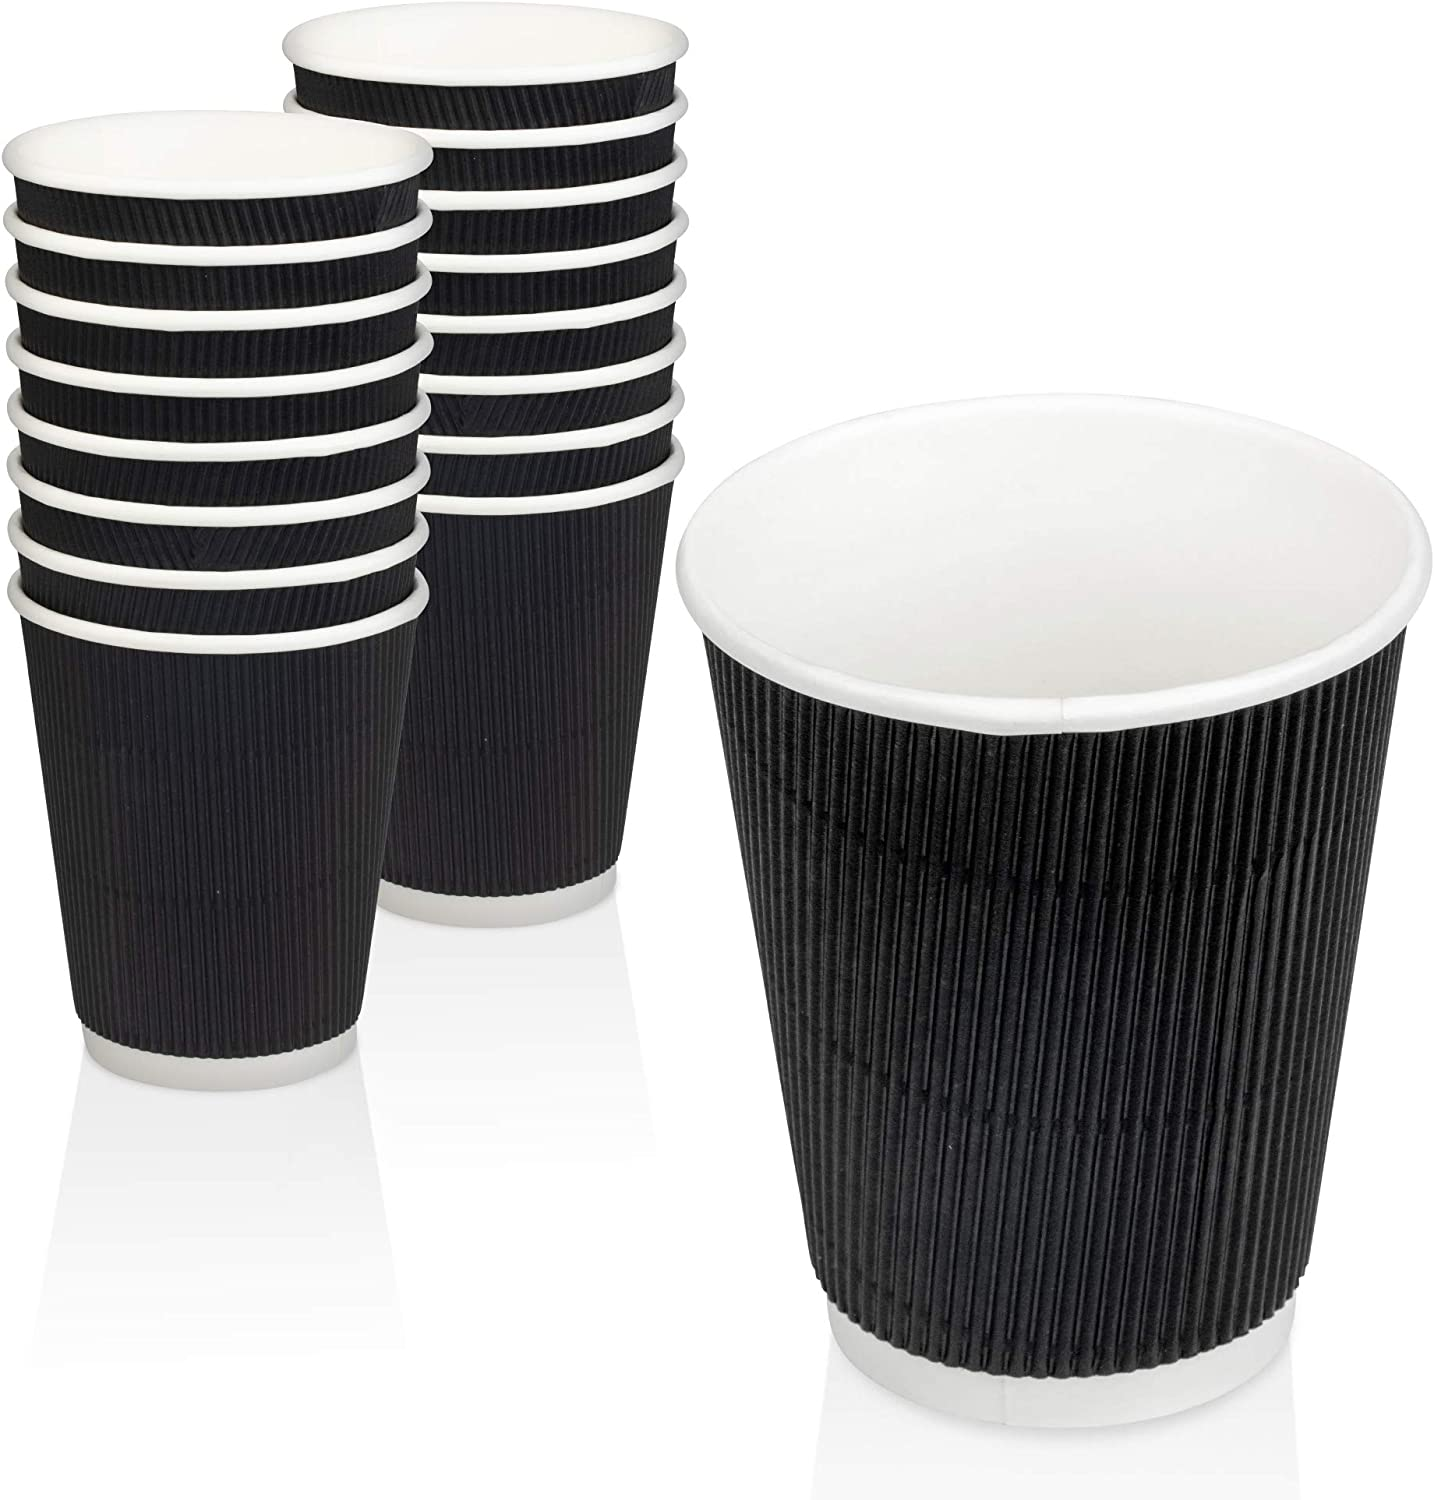 [50 Pack] Disposable Hot Cups - 8oz Black Double Wall Insulated Ripple Sleeves To Go Coffee Cups - Kraft Hot Beverage Cups for Chocolate, Tea, and Cocoa Drinks - Sturdy, Food Safe, and Eco Friendly